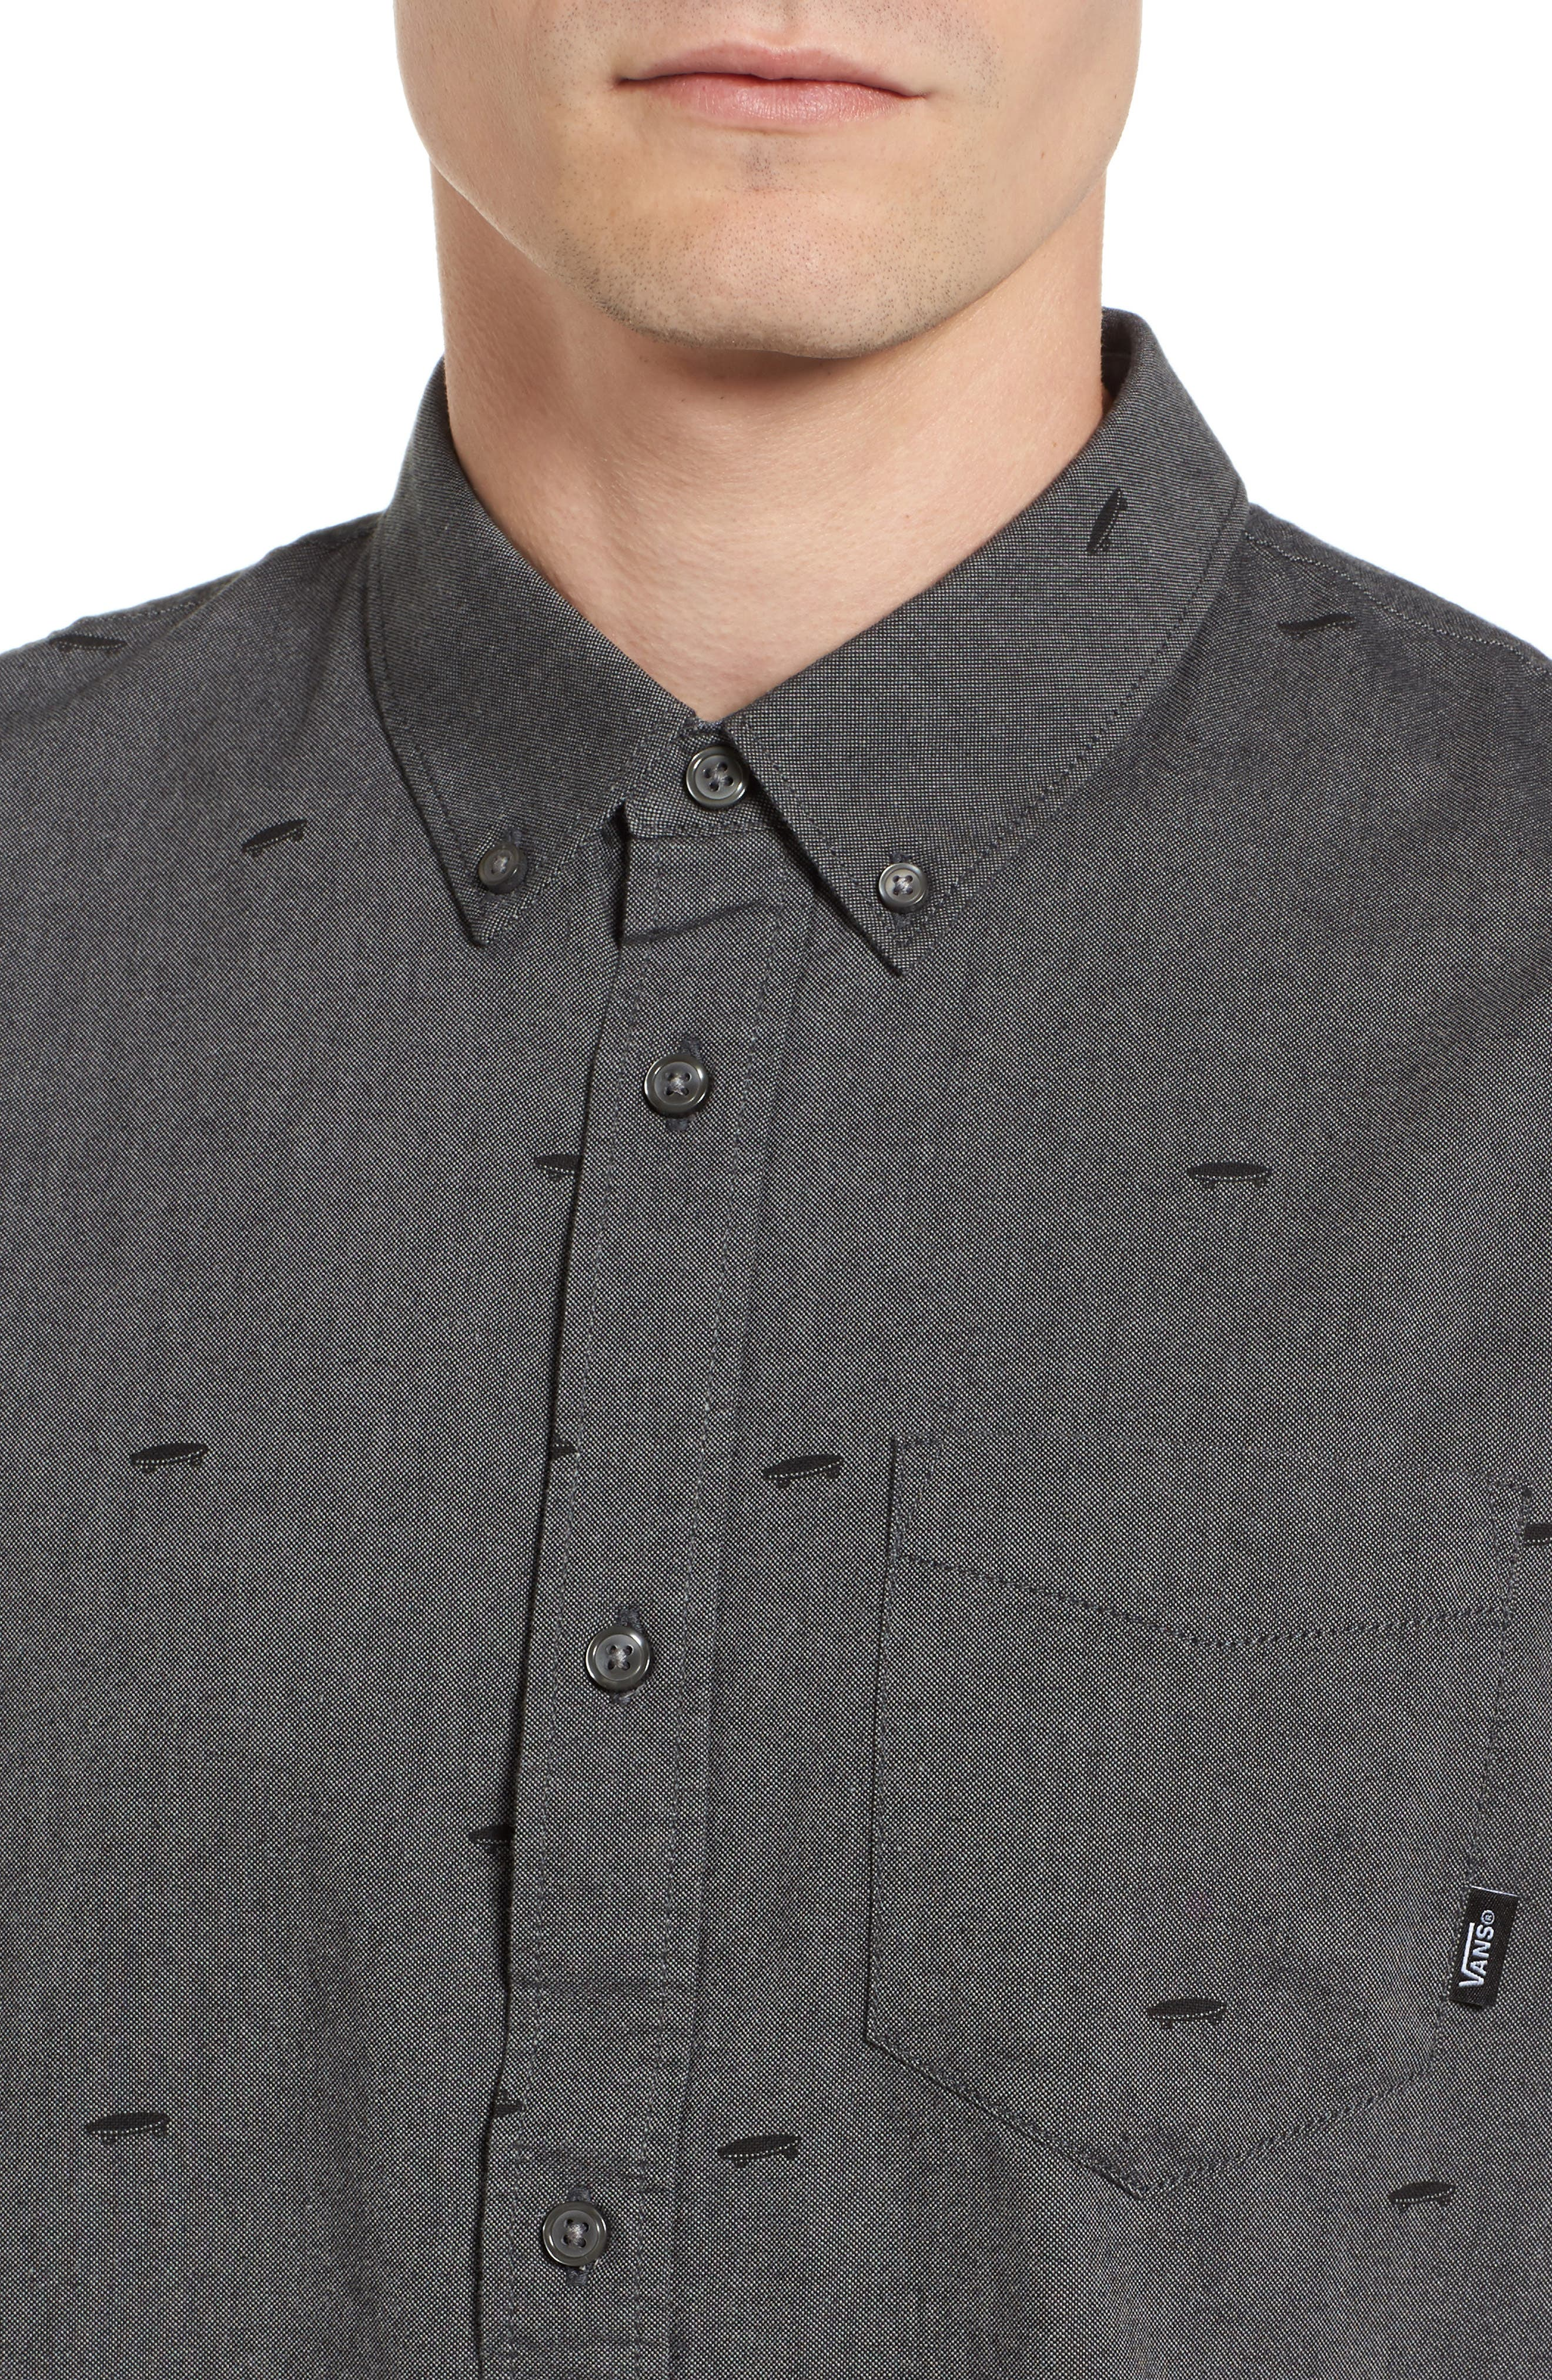 Houser Woven Shirt,                             Alternate thumbnail 4, color,                             Black Salton Ditsy